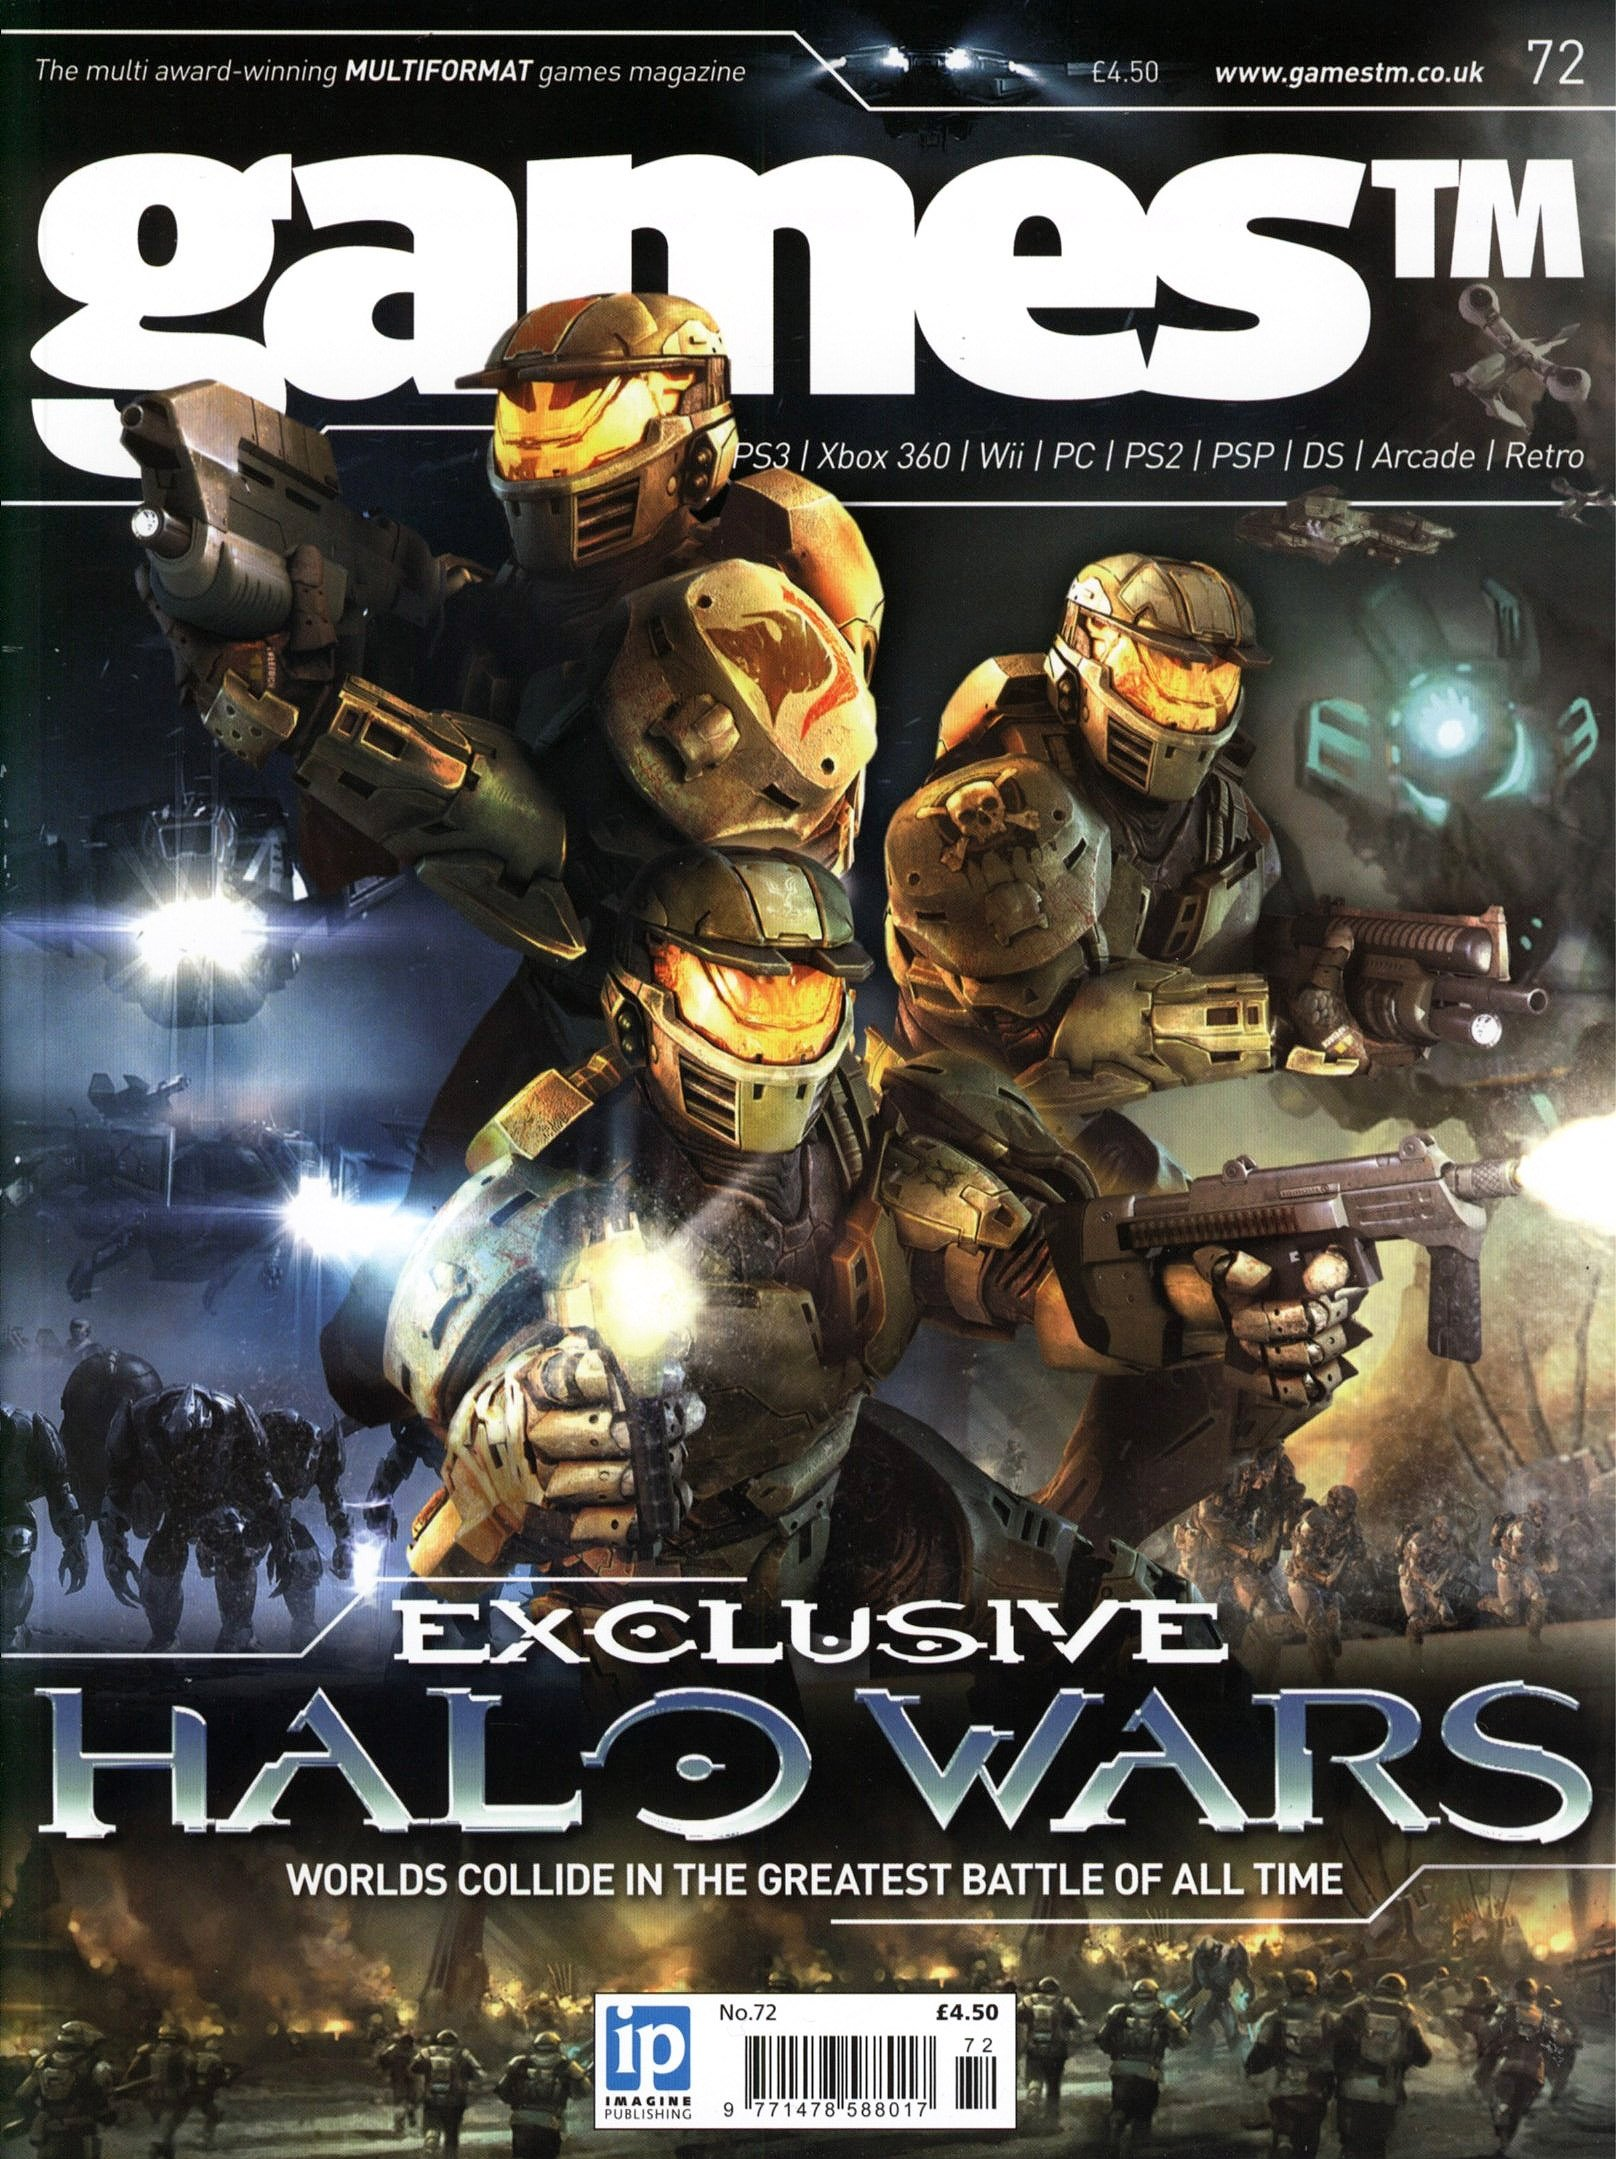 Games TM Issue 072 (July 2008)